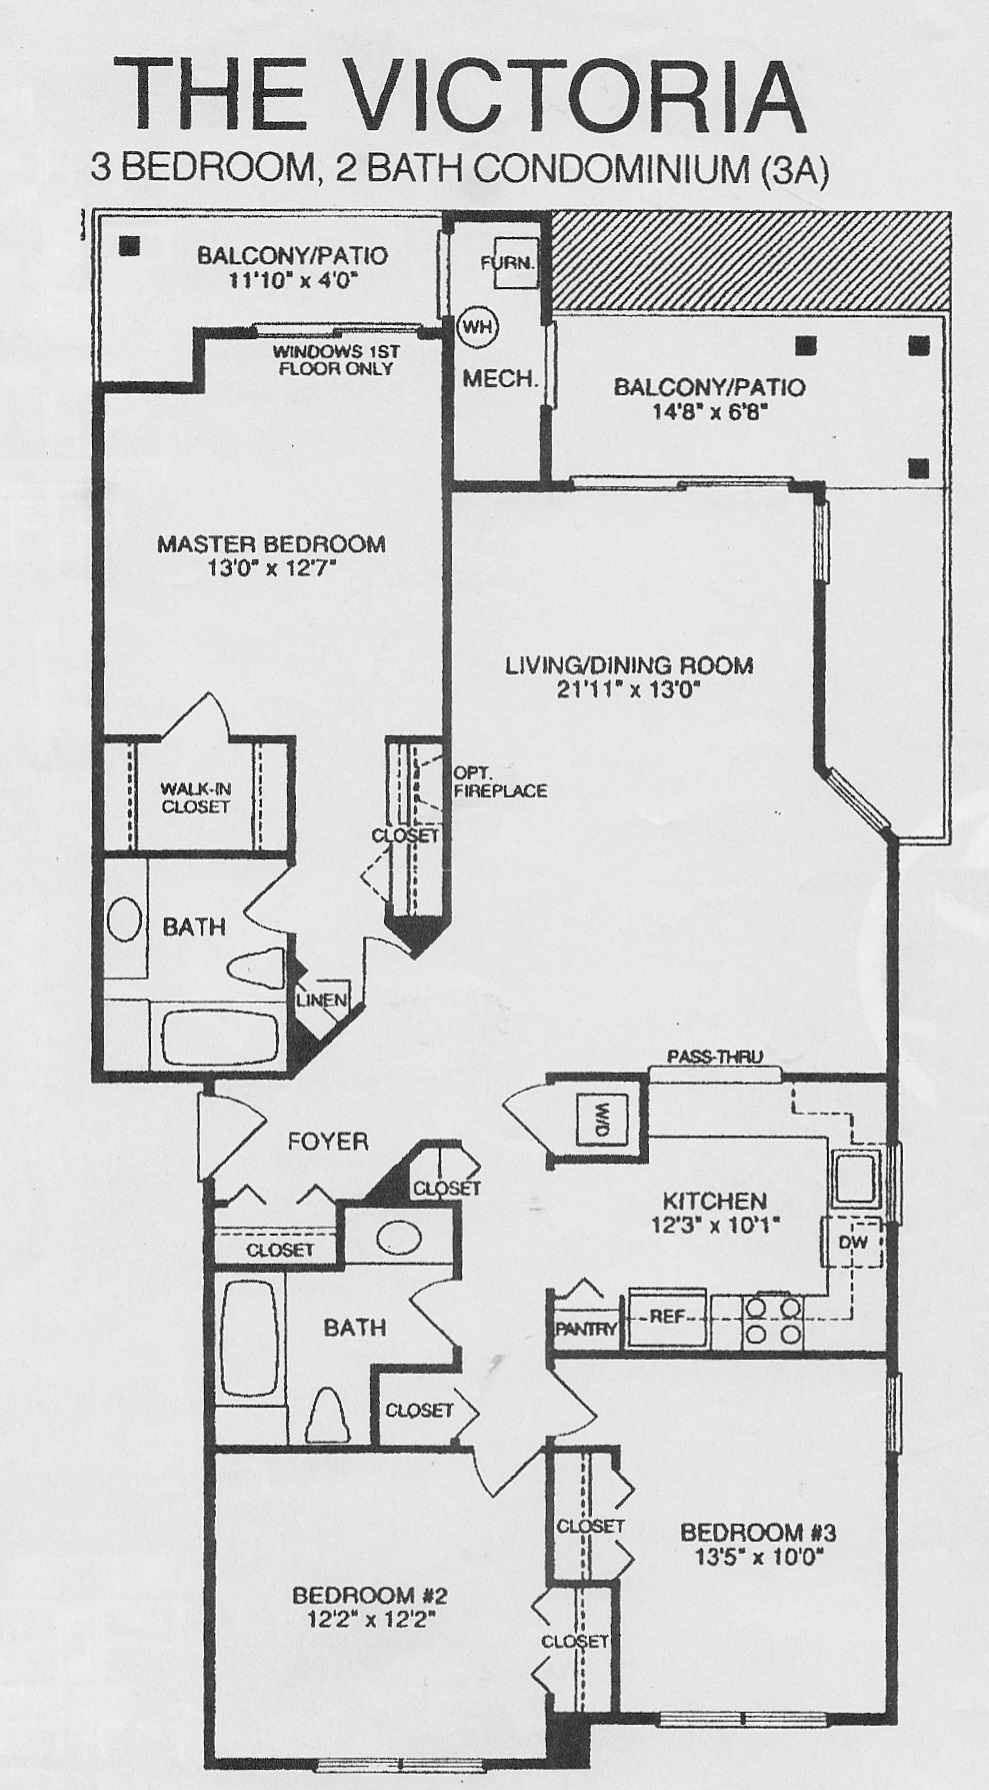 lakeshore condominium floor plans - lakeshore condominium